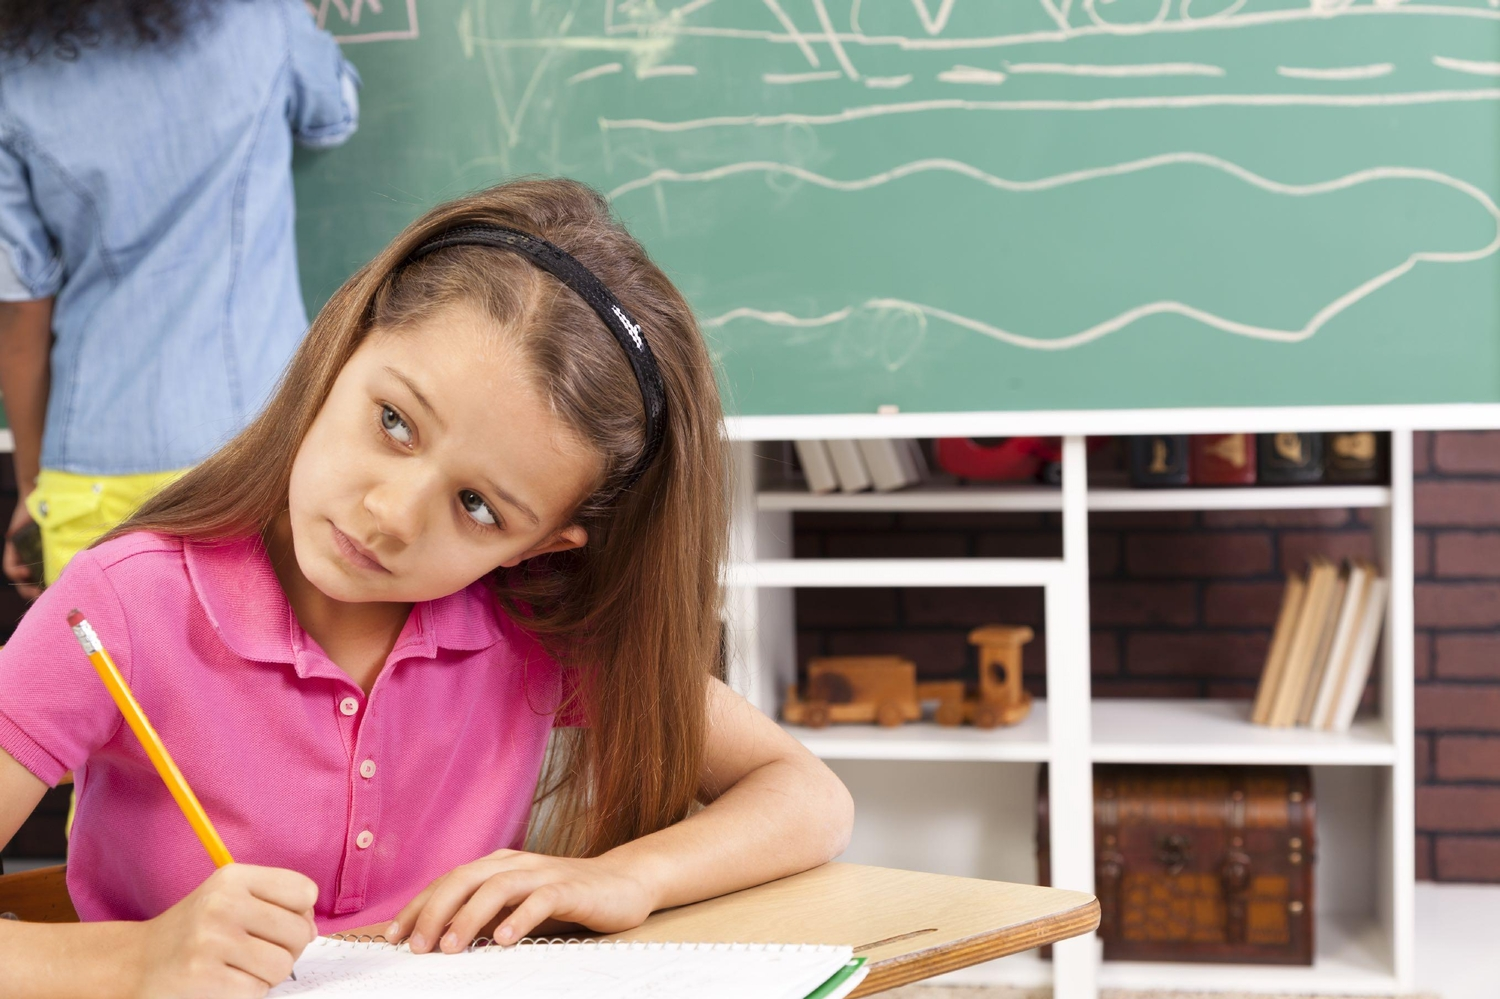 Little girl in pink collared shirt studying